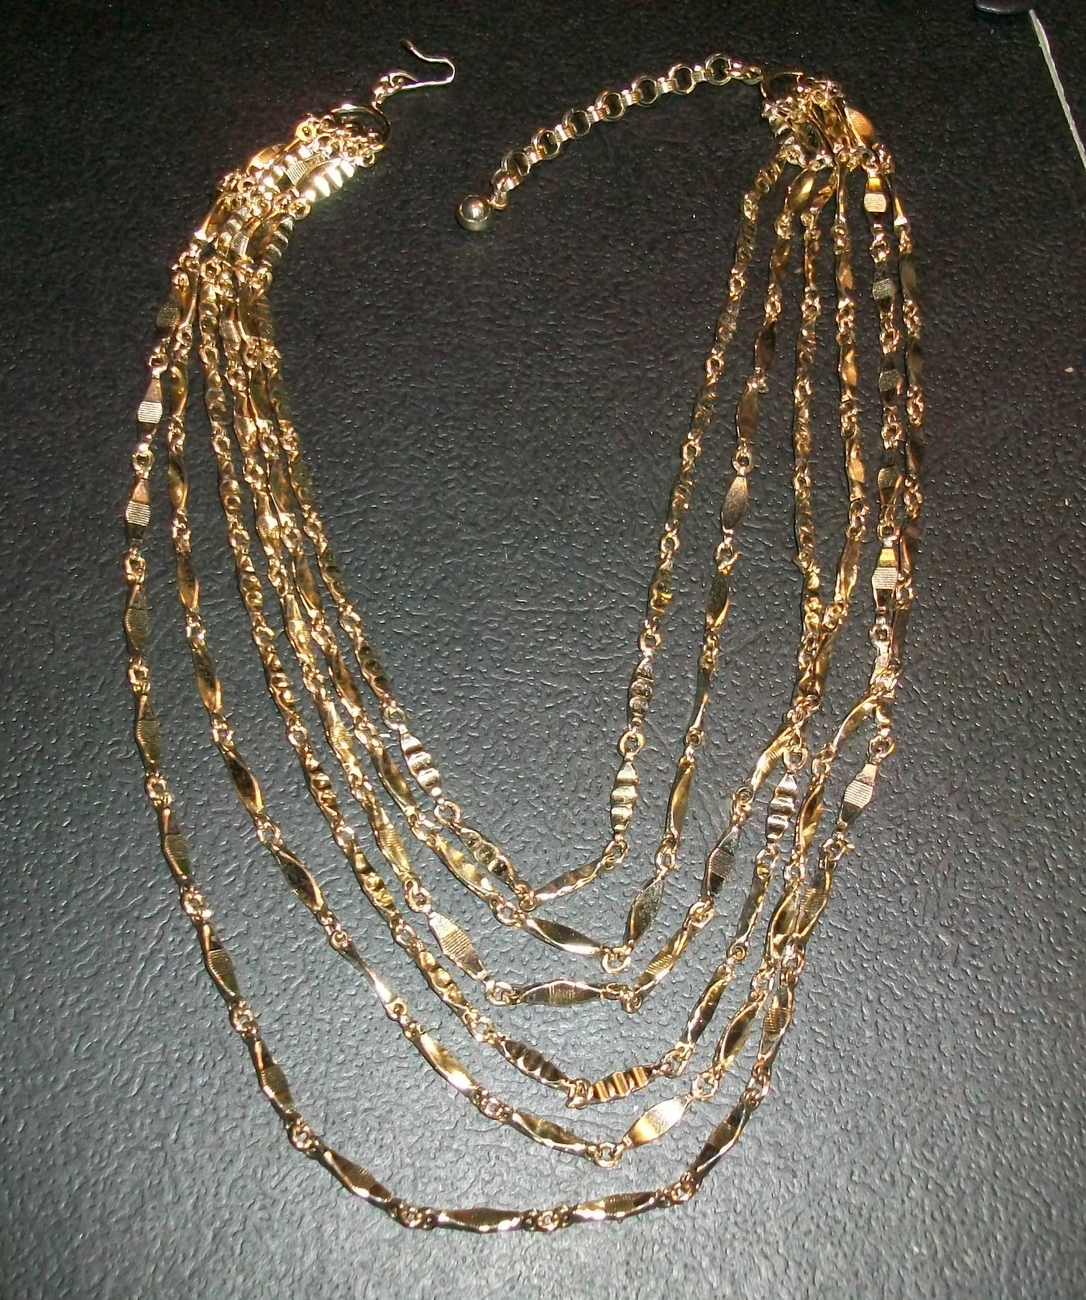 Brilliant Gold Tone Multi-Strand Necklace with 6 Strands and J Hook Clasp